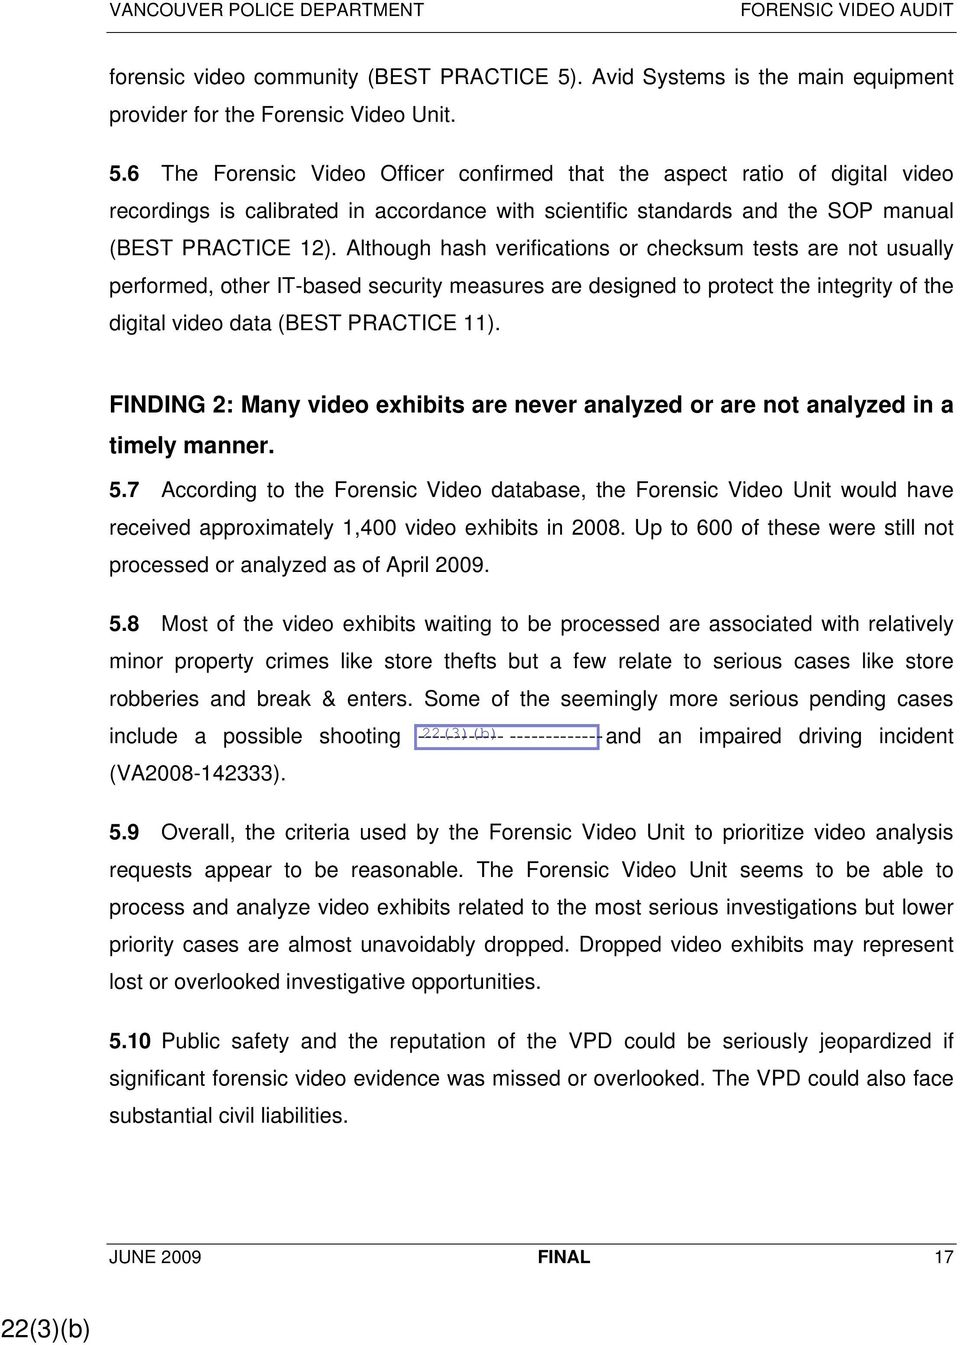 6 The Forensic Video Officer confirmed that the aspect ratio of digital video recordings is calibrated in accordance with scientific standards and the SOP manual (BEST PRACTICE 12).